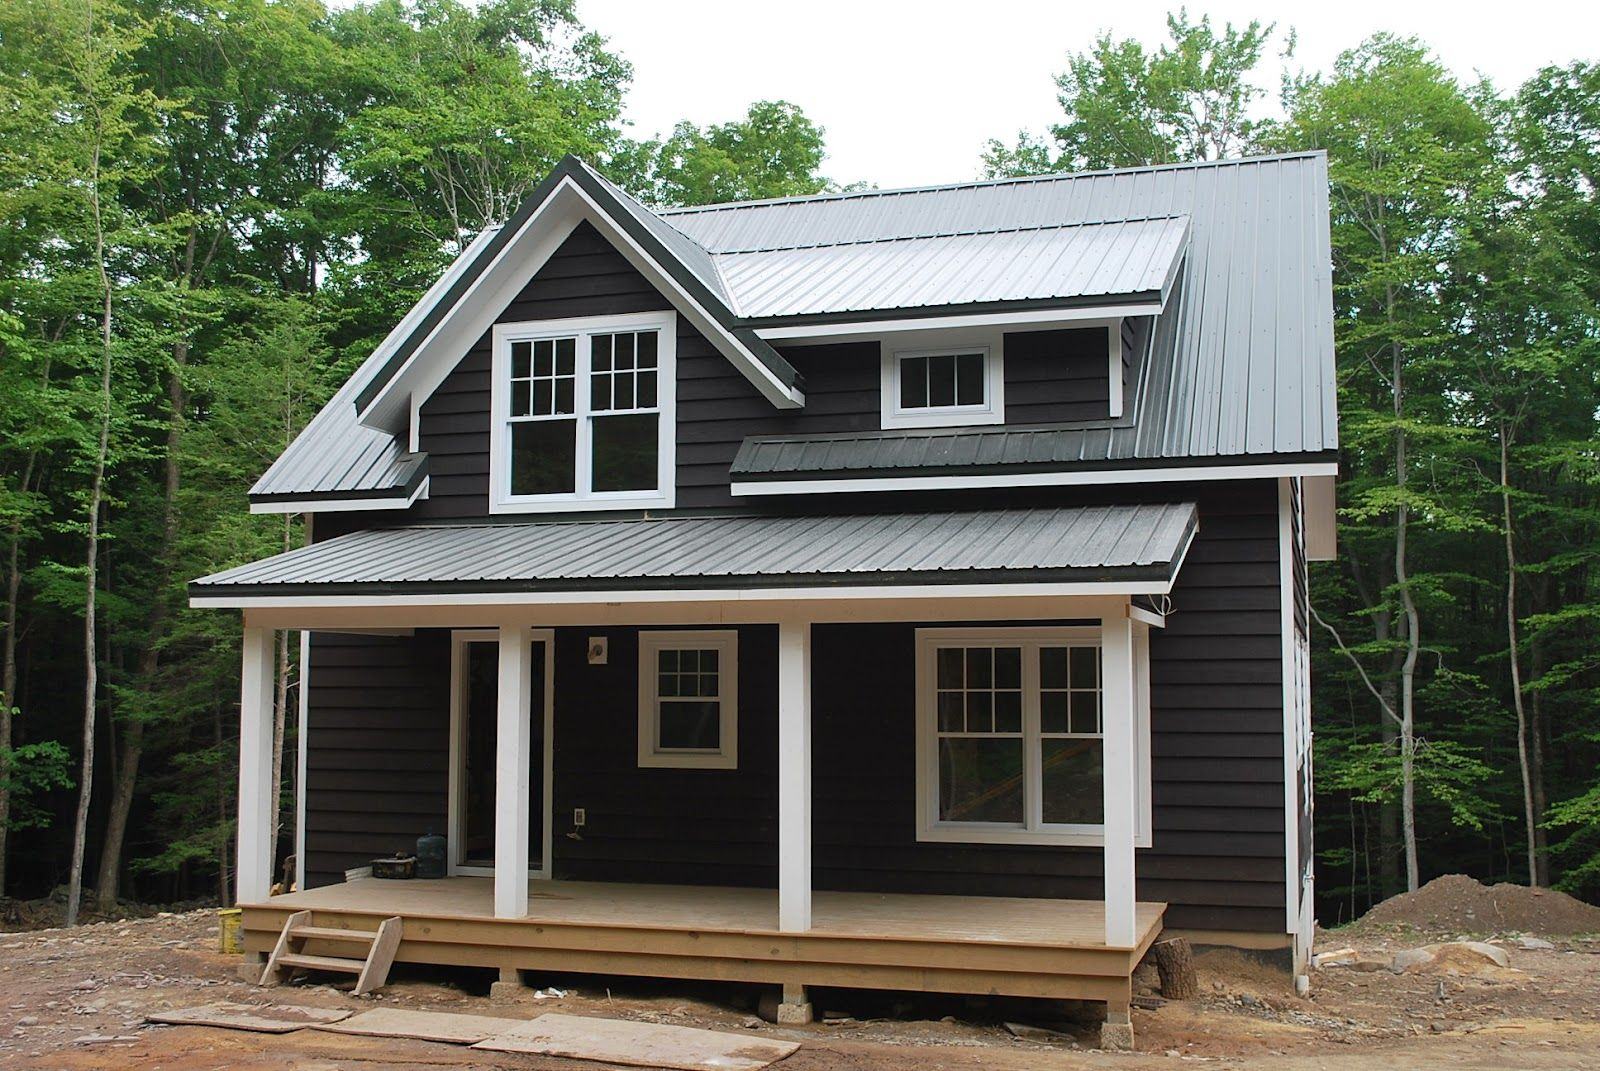 Houses For Sale In Woodstock And Bearsville And Under Construction Modern Tiny House Buy A Tiny House Tiny House On Wheels